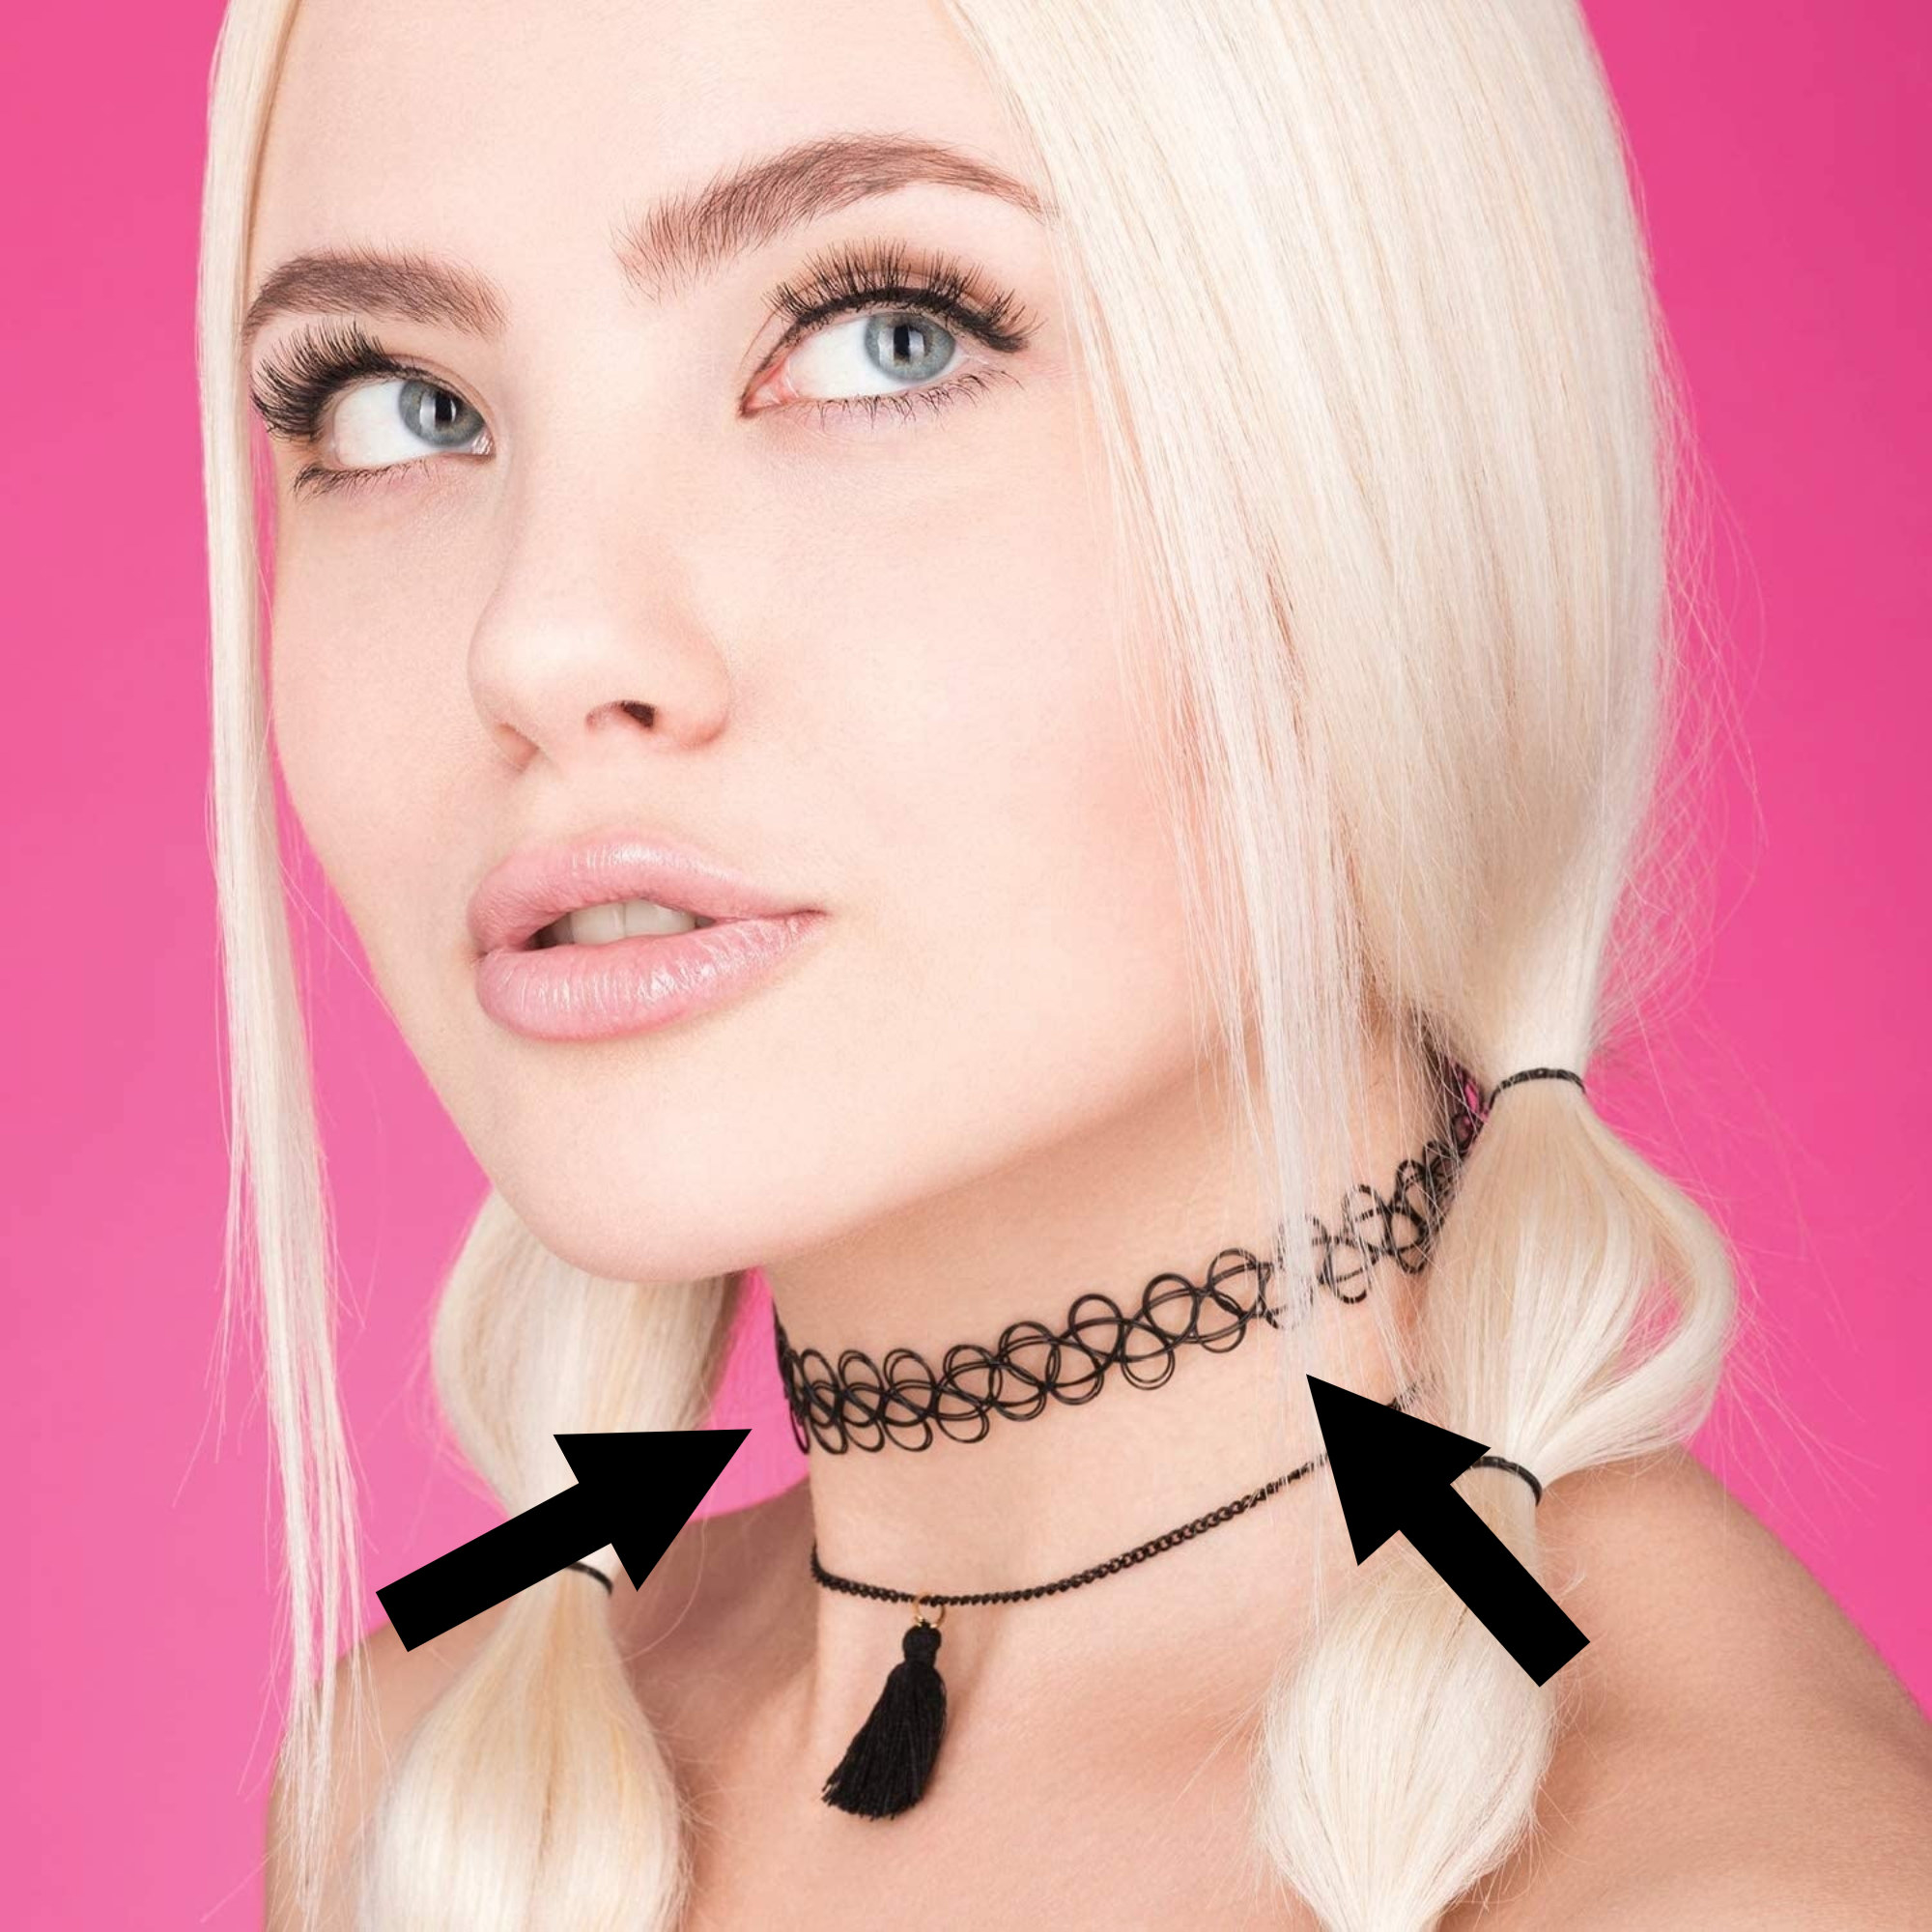 a person with a 90s hair style wearing a stretchy choker layered with a thin necklace